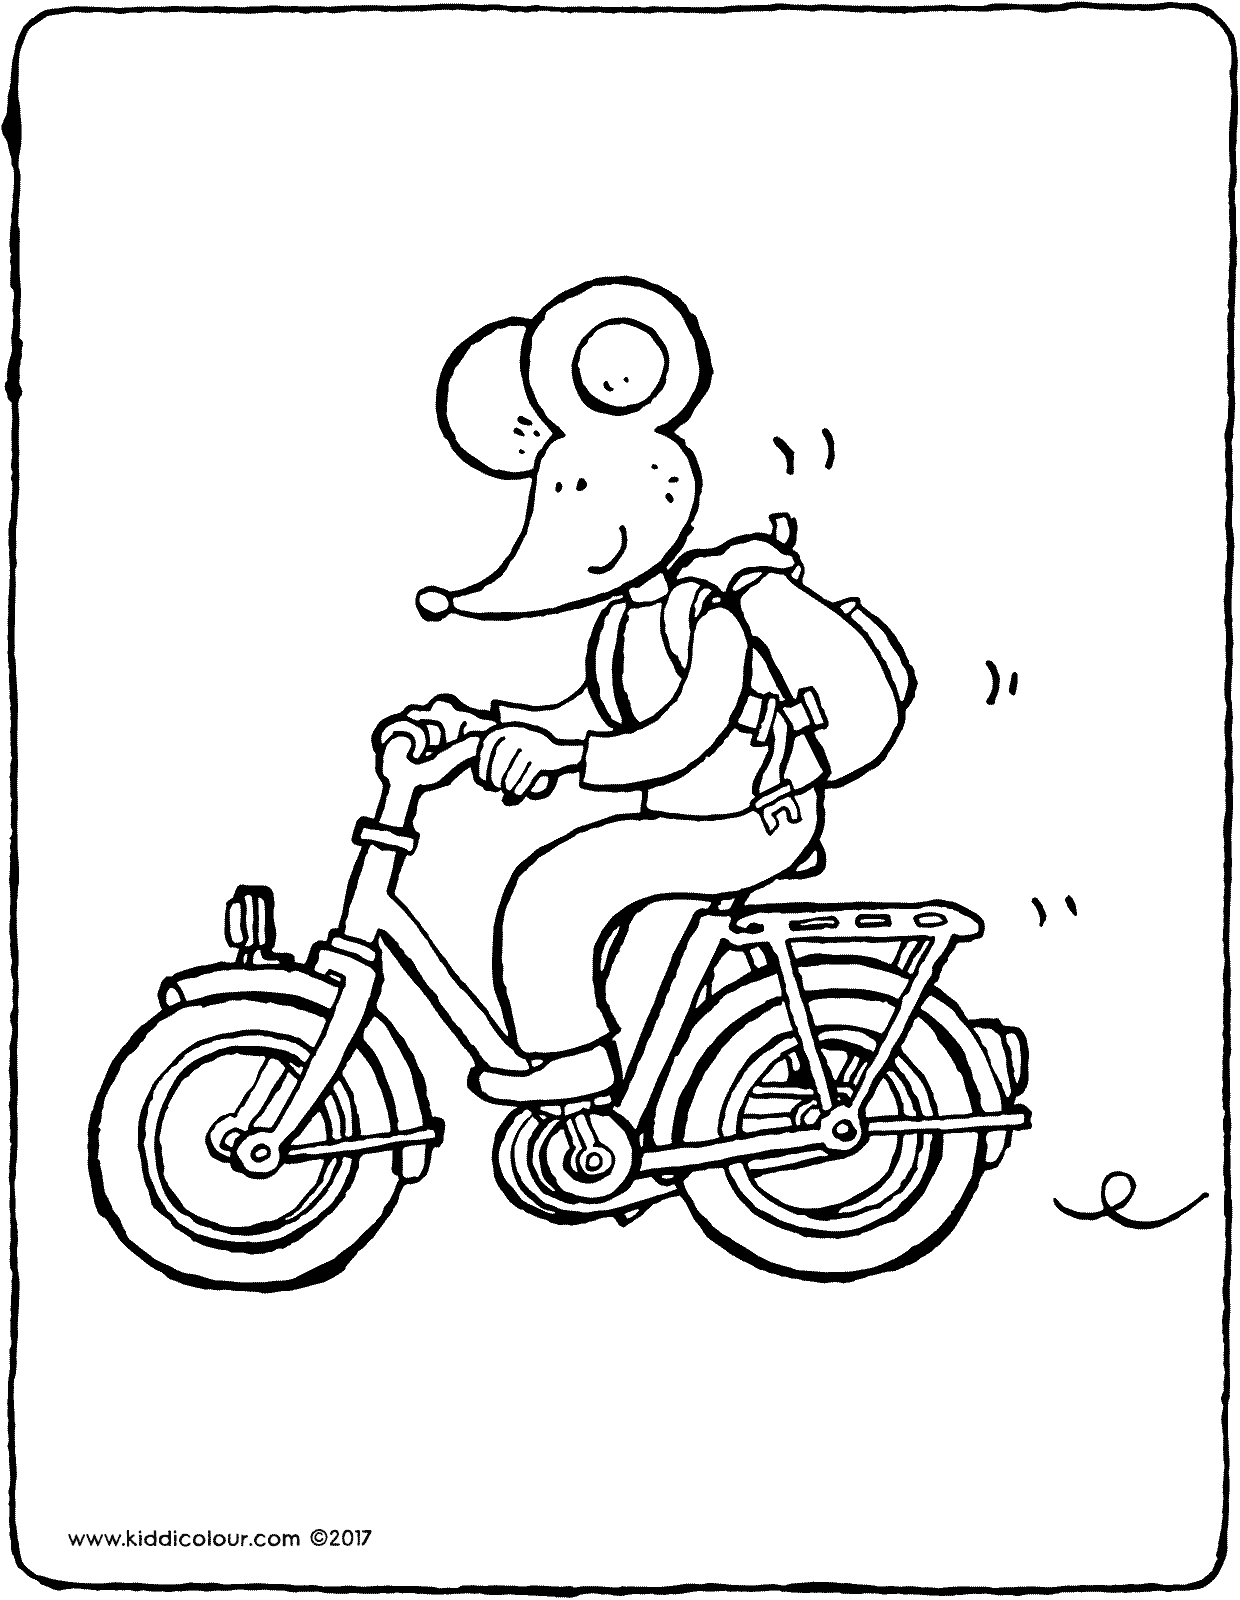 Thomas's bicycle colouring page drawing picture 01V